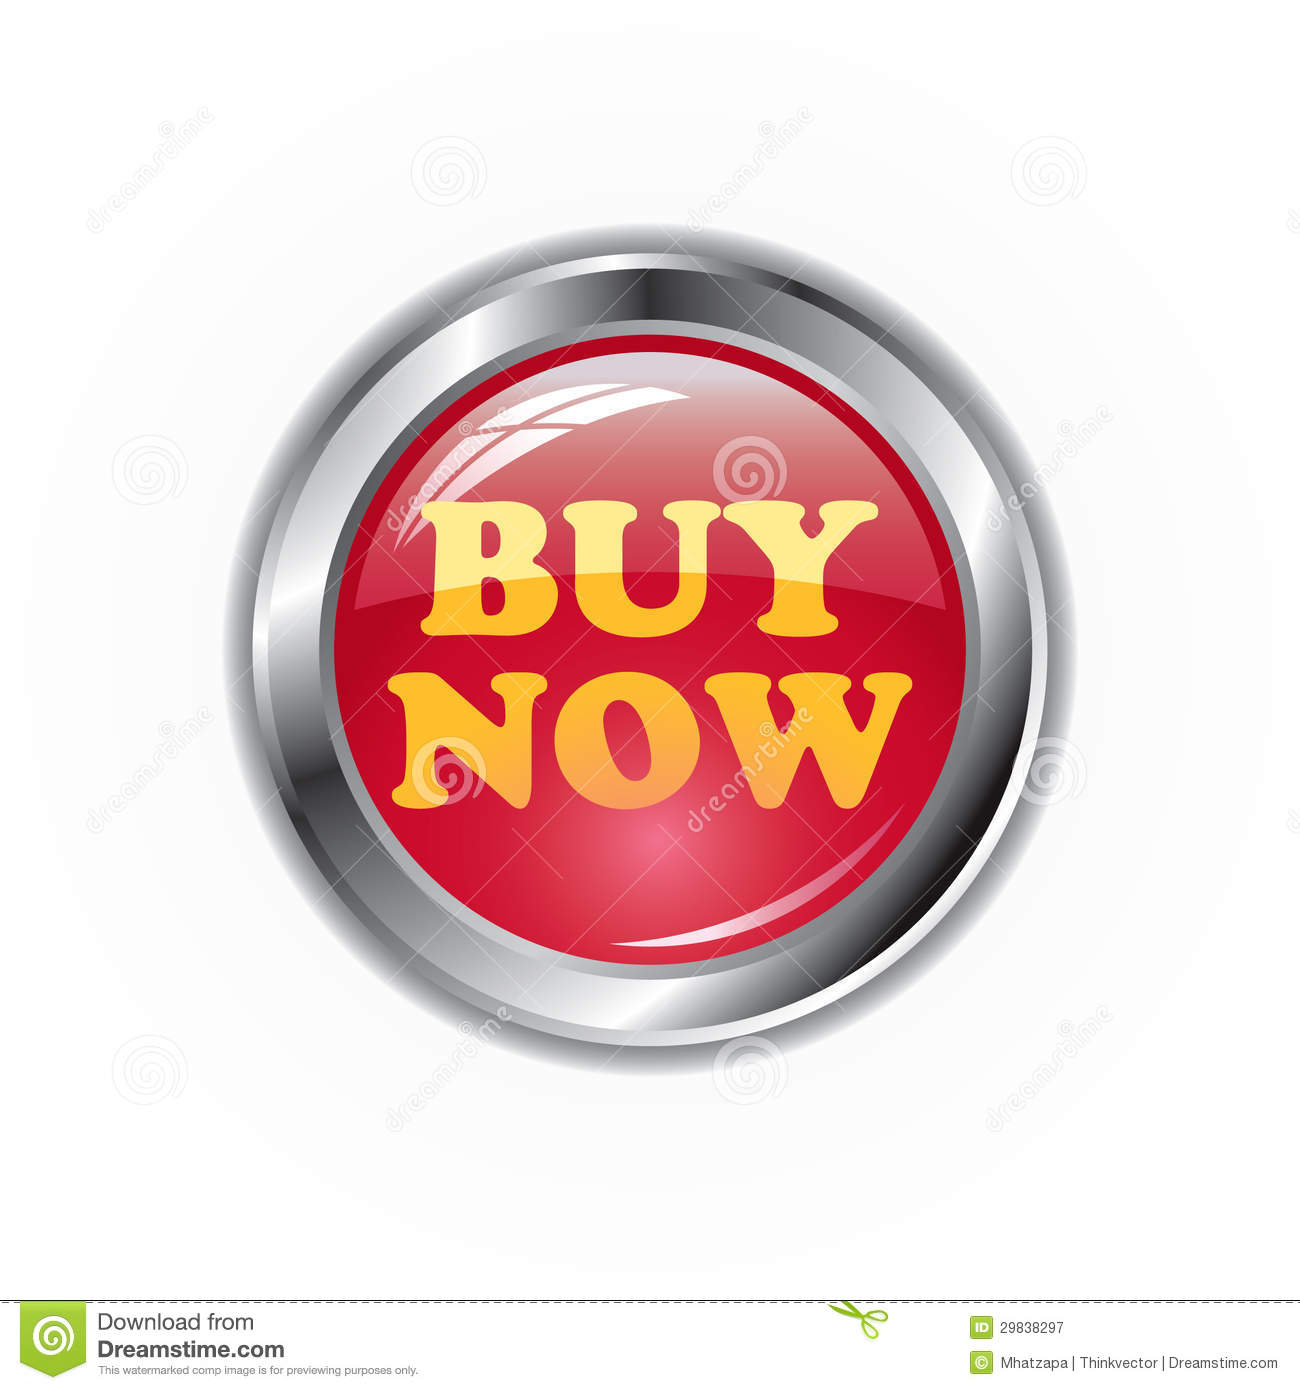 Buy It Now: Buy Now Button Royalty Free Stock Photography